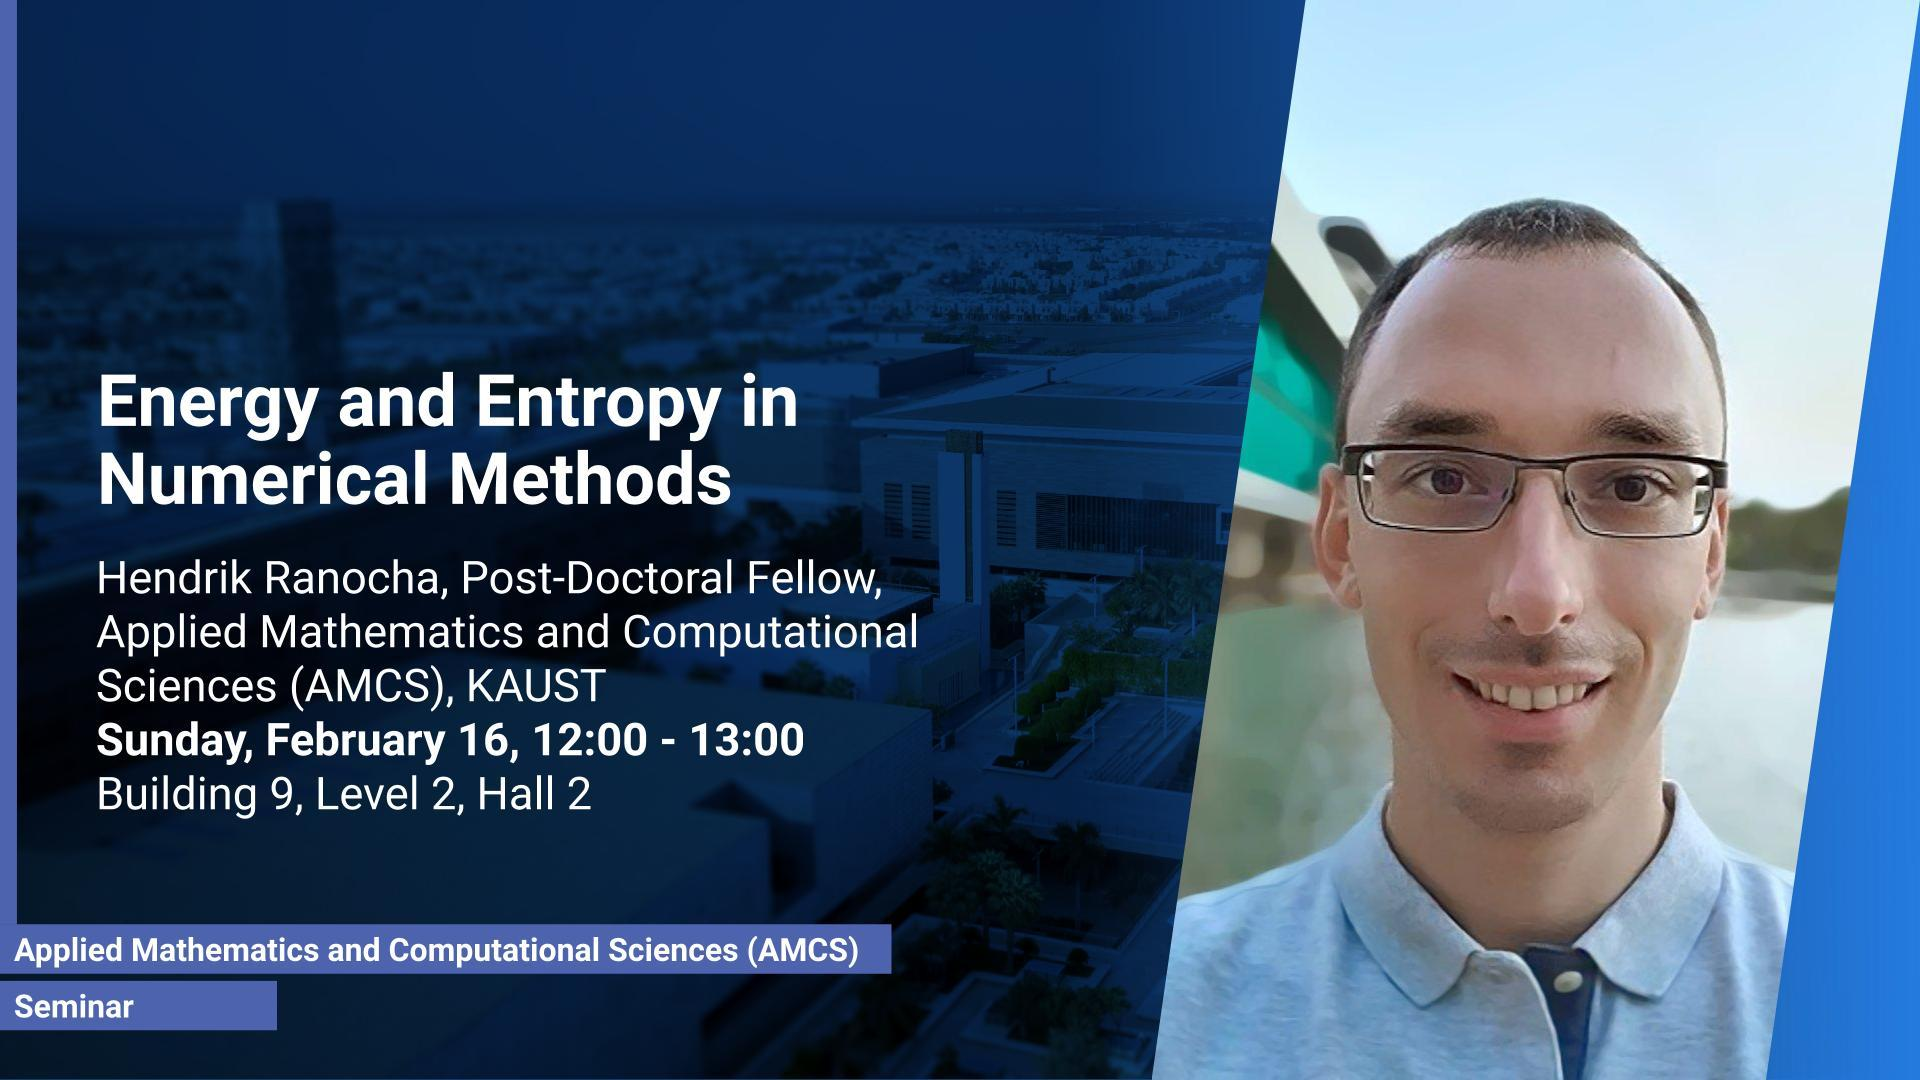 KAUST CEMSE AMCS Seminar Hendrik Ranocha Energy and Entropy in Numerical Methods